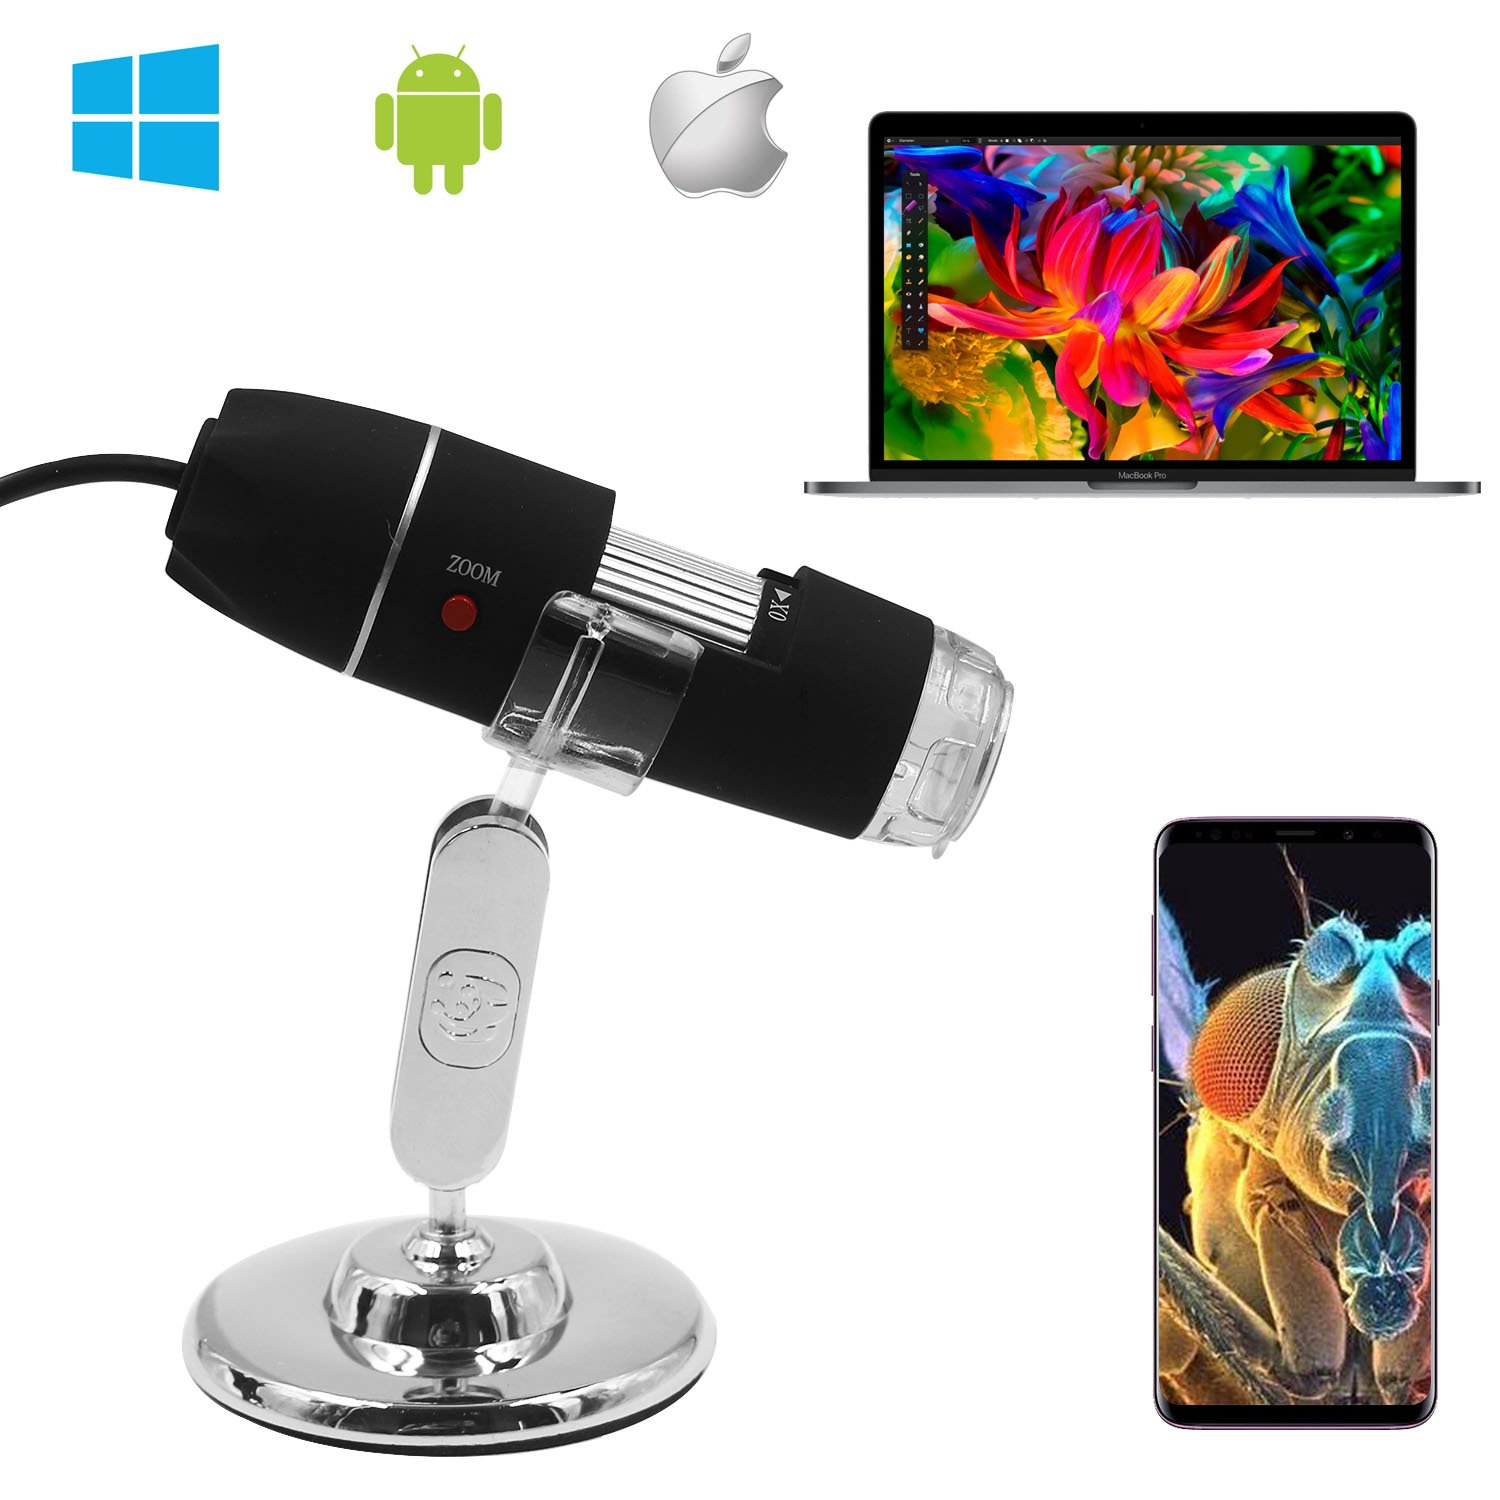 Digital Microscope,Z-Roya 0 to 1600x Magnification Endoscope, 2MP 8 LEDUSB 2.0& Micro Digital Microscope, Mini Camera with Stand, Compatible with Mac Window 7 8 10 Android Linux by Z-Roya